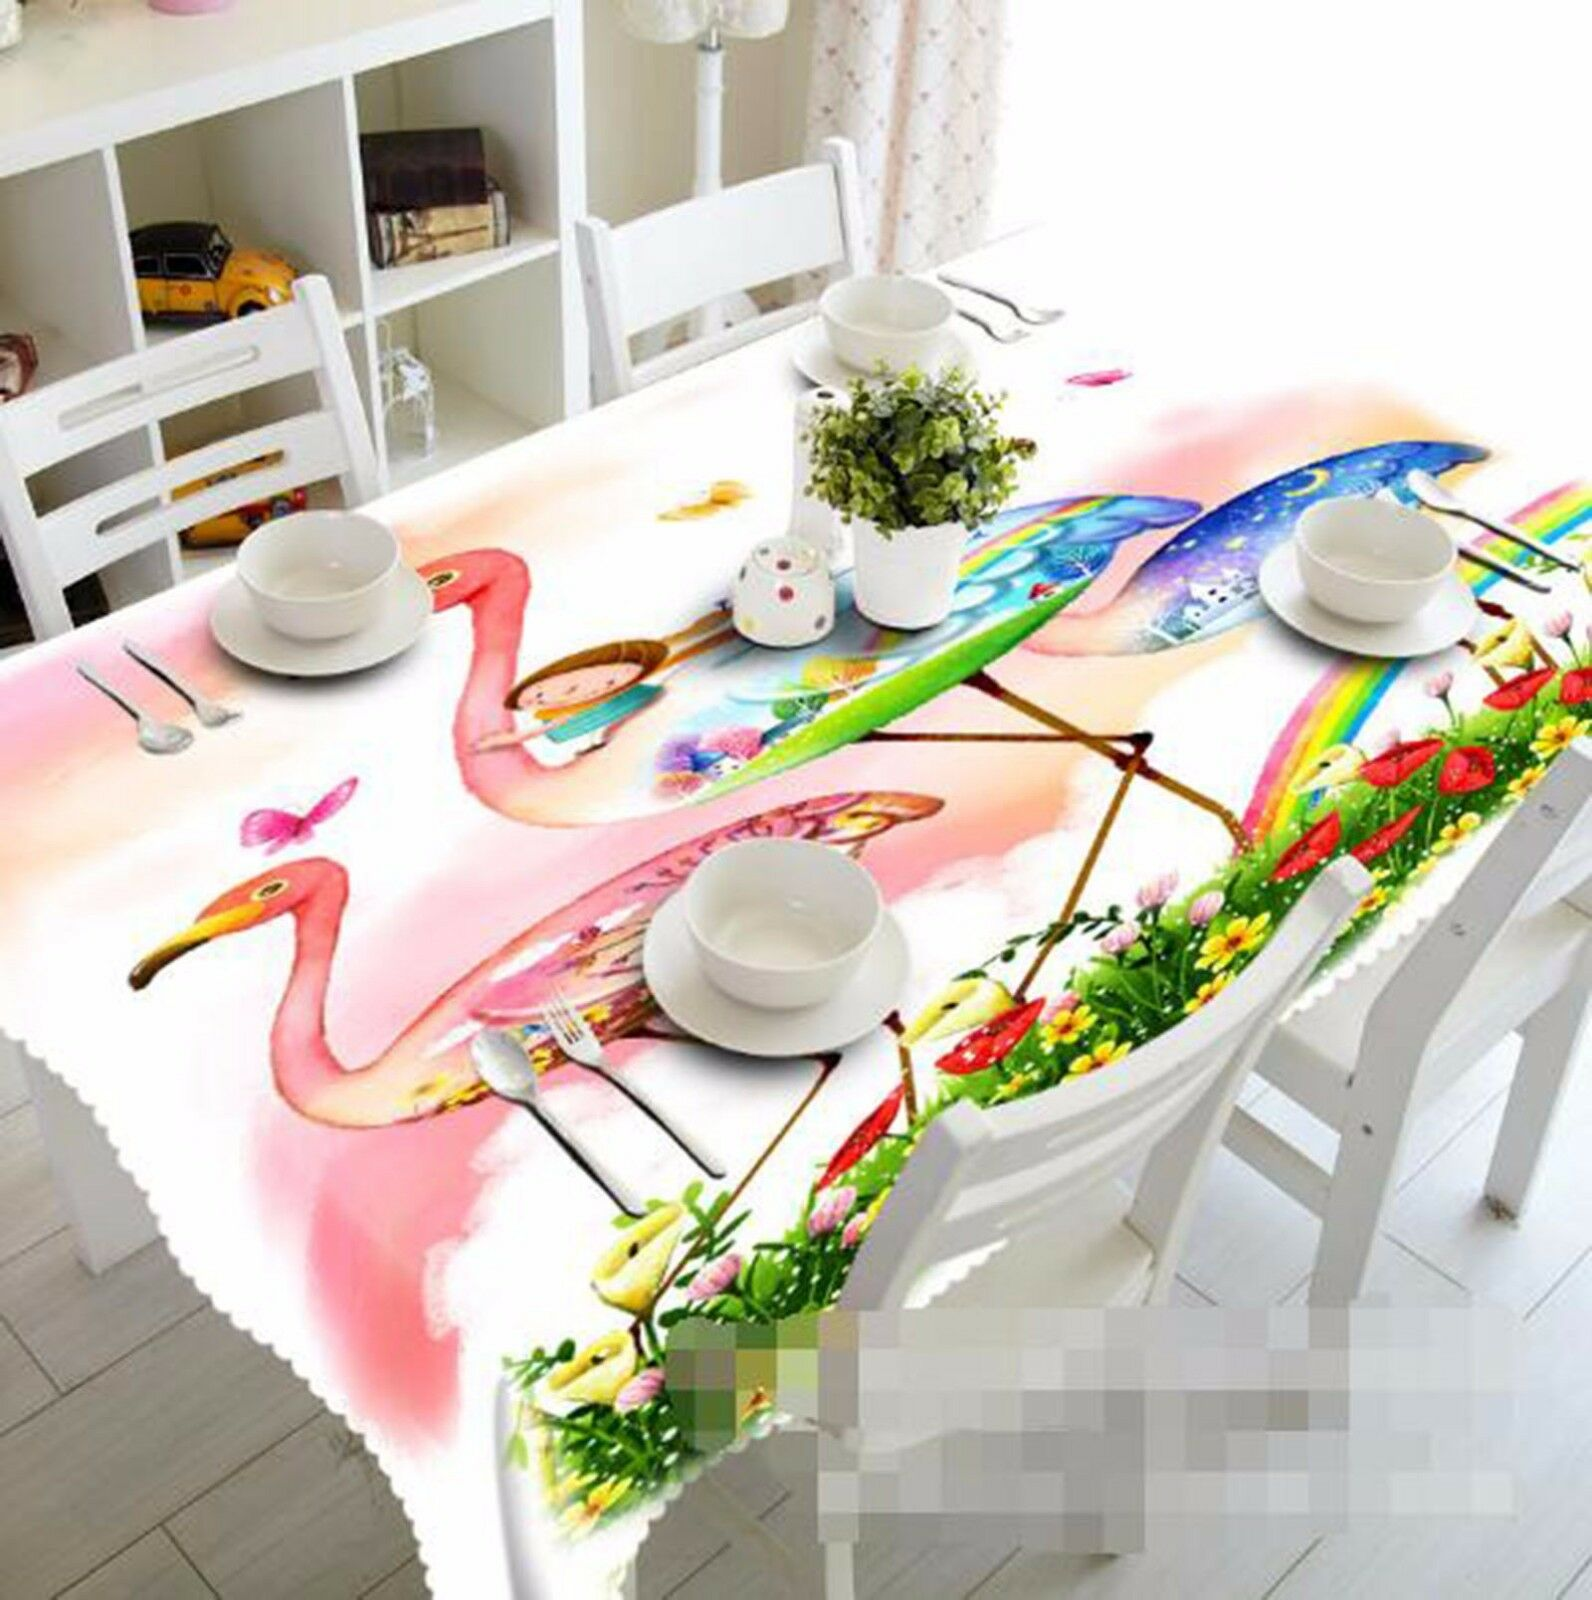 3D Cartoon 62 Tablecloth Table Cover Cloth Birthday Party AJ WALLPAPER UK Lemon